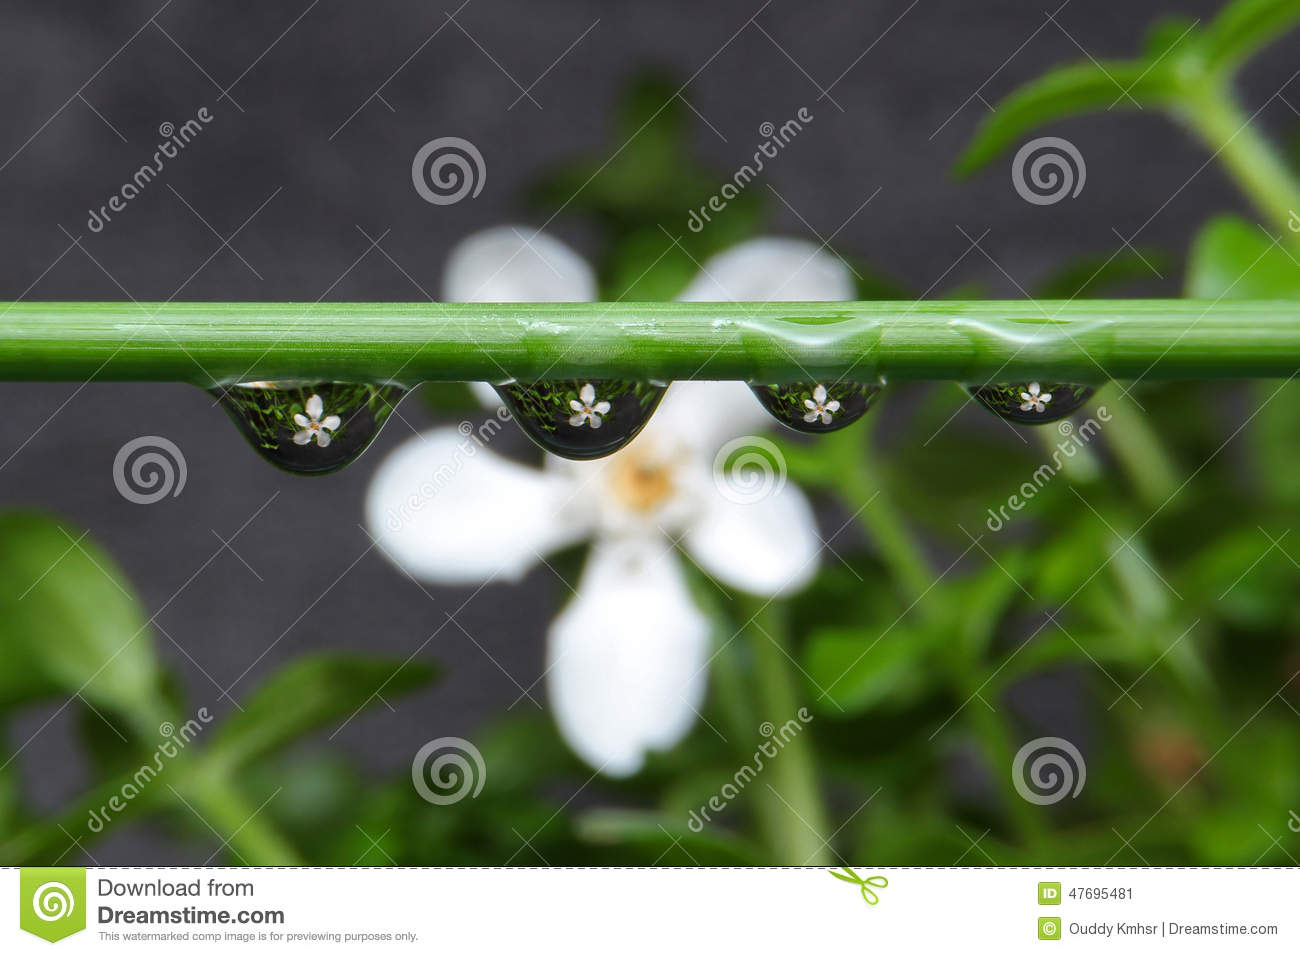 Flower in drop